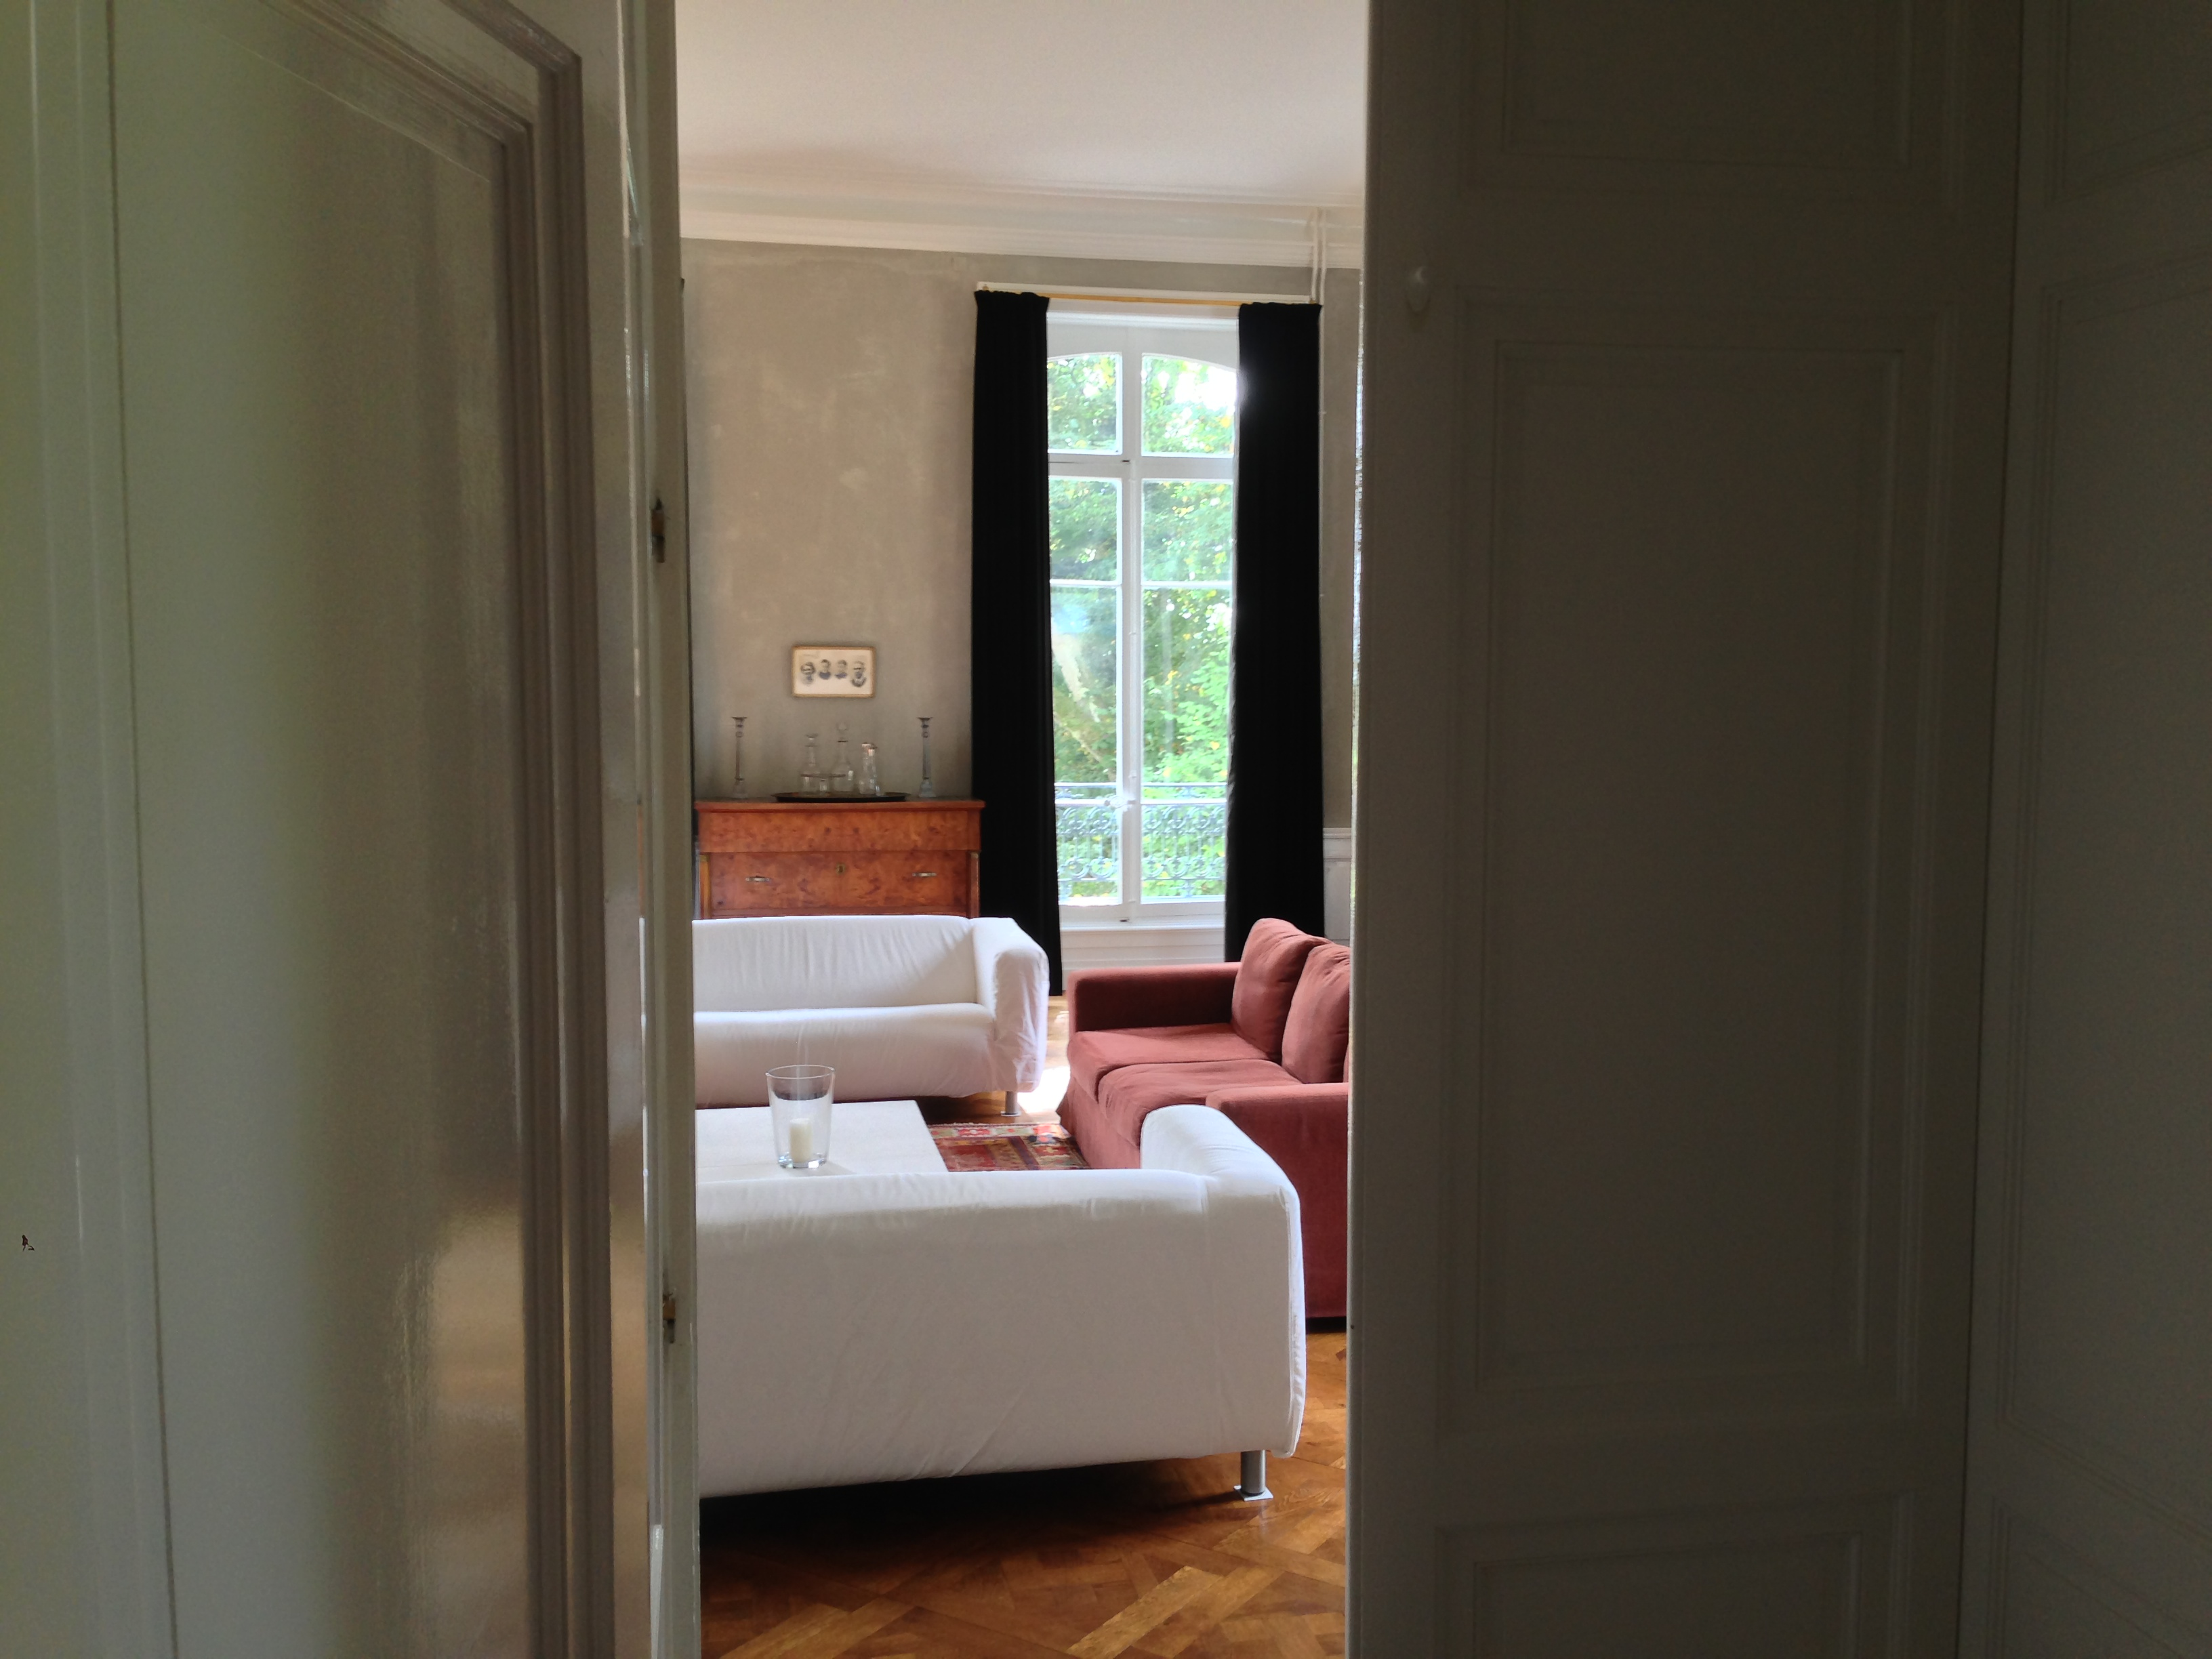 Chateau Les Bardons Sittingroom with mozaiek, satelite and log fire place